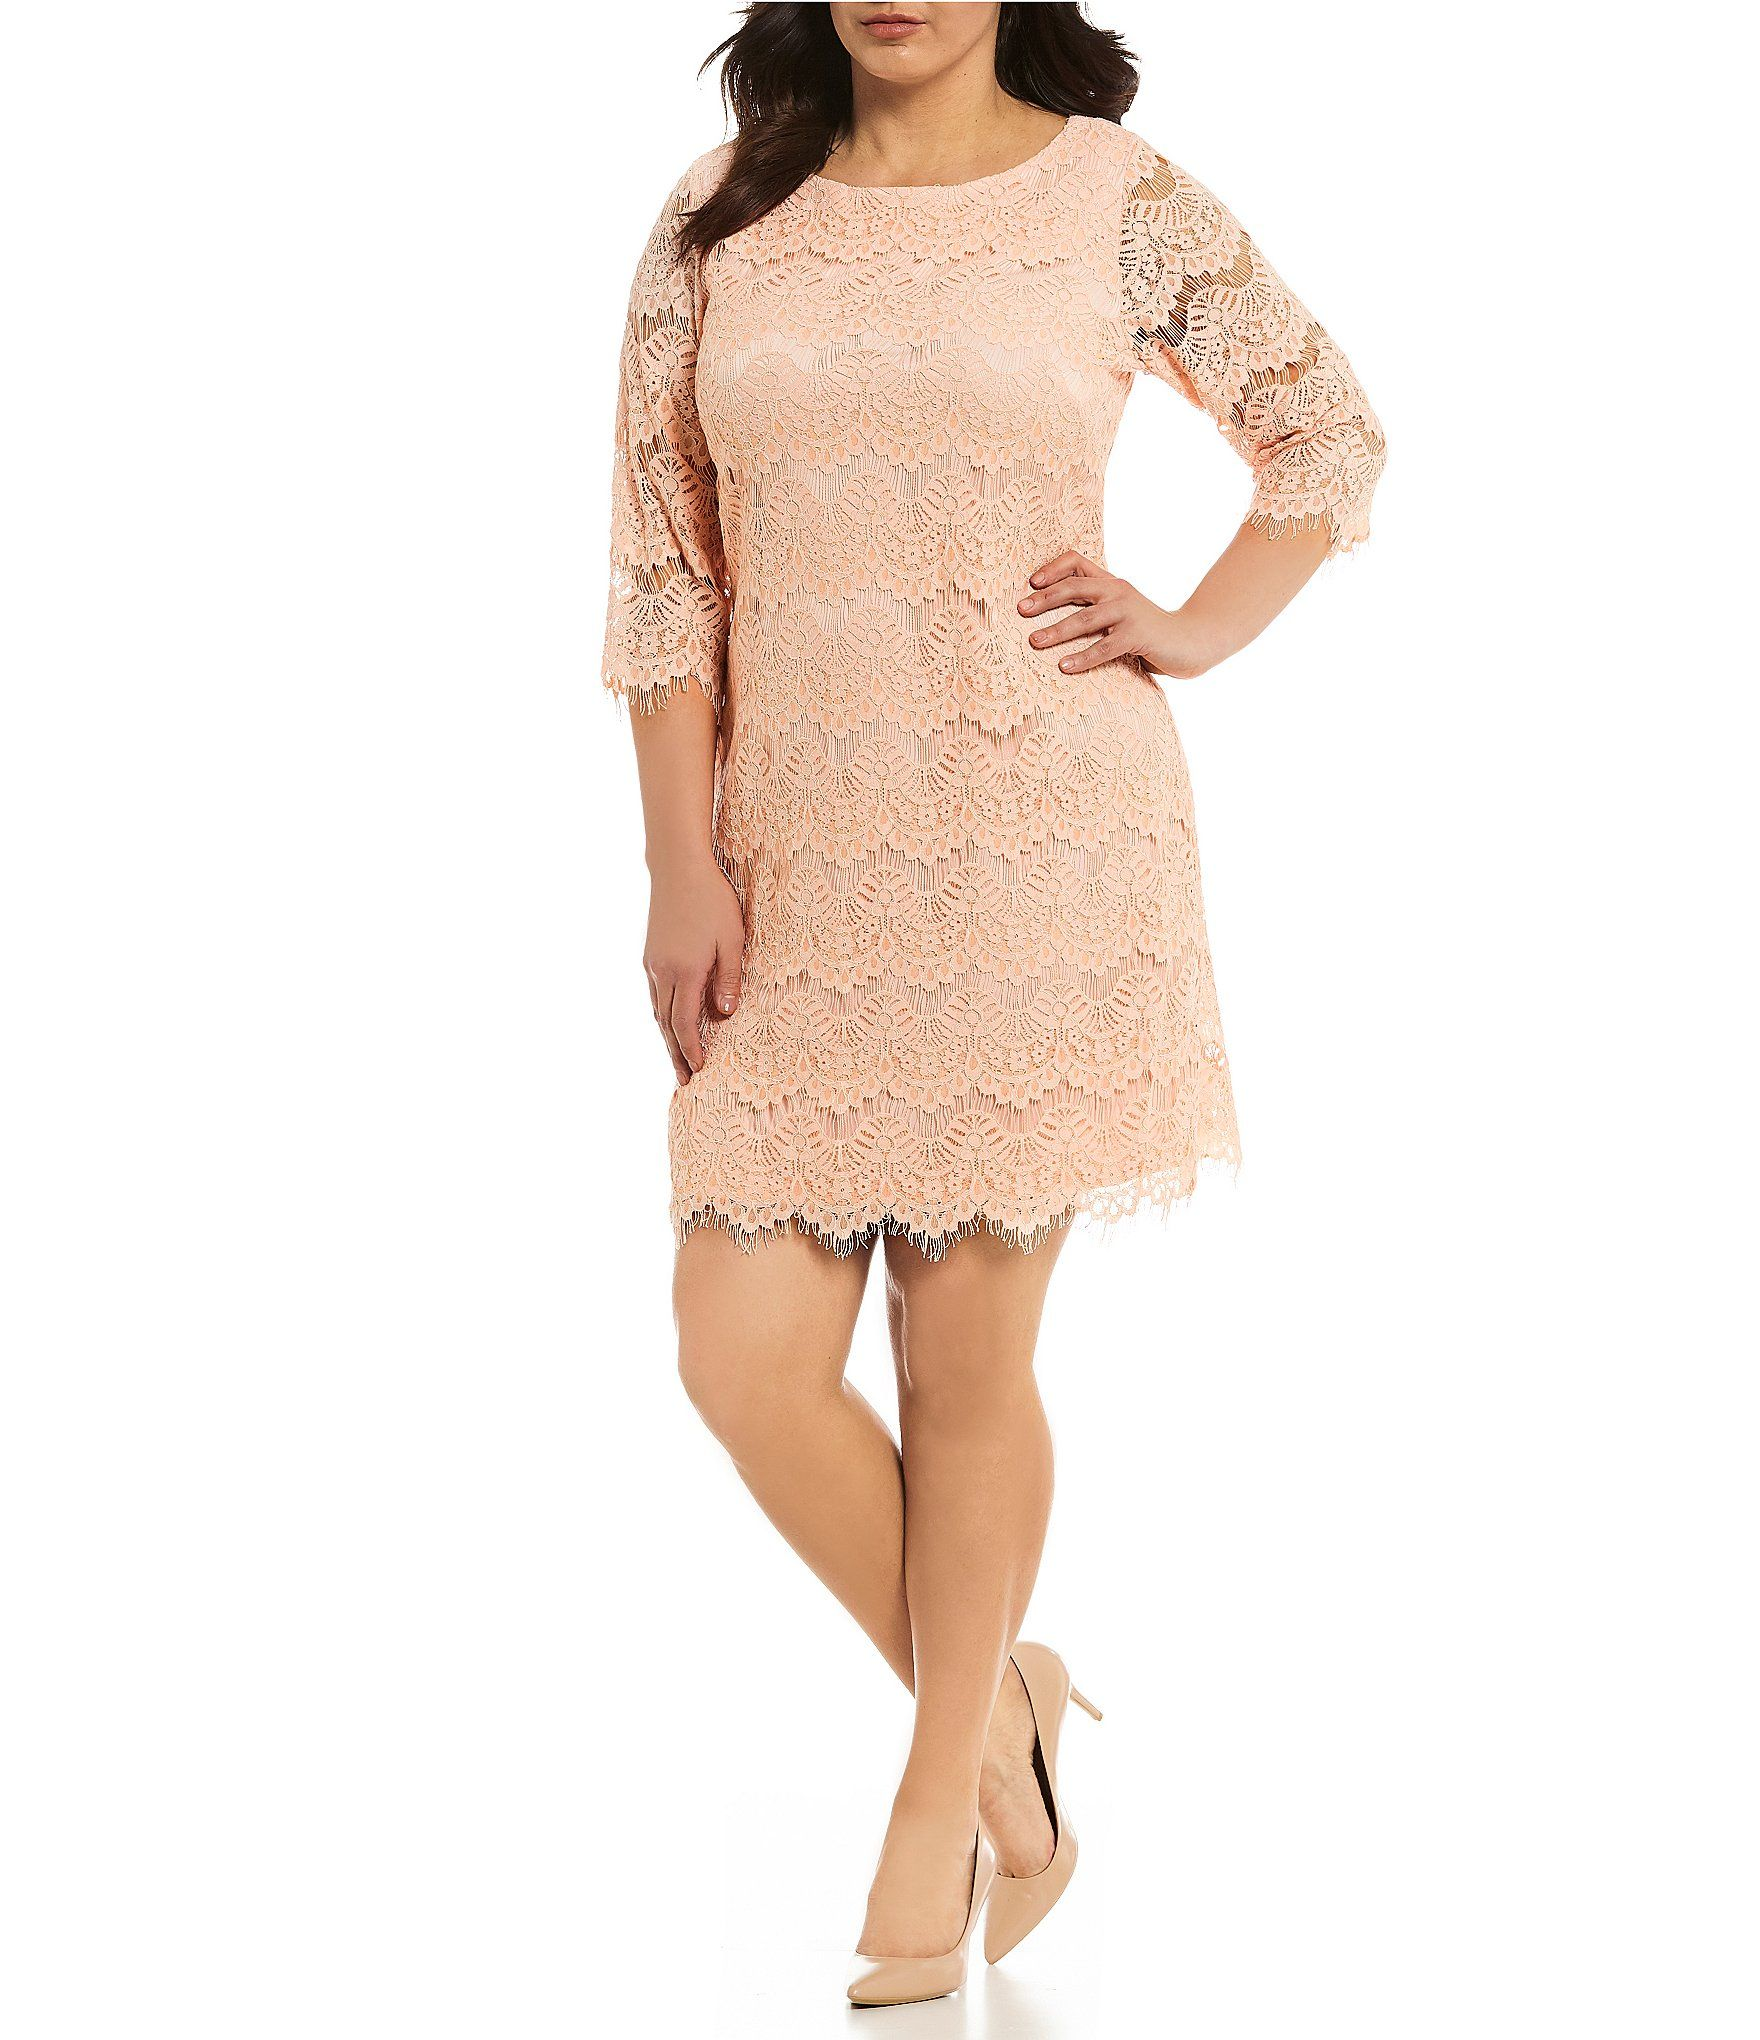 acb9909816 Brianna Plus Size Embroidered Sequin Popover Dress